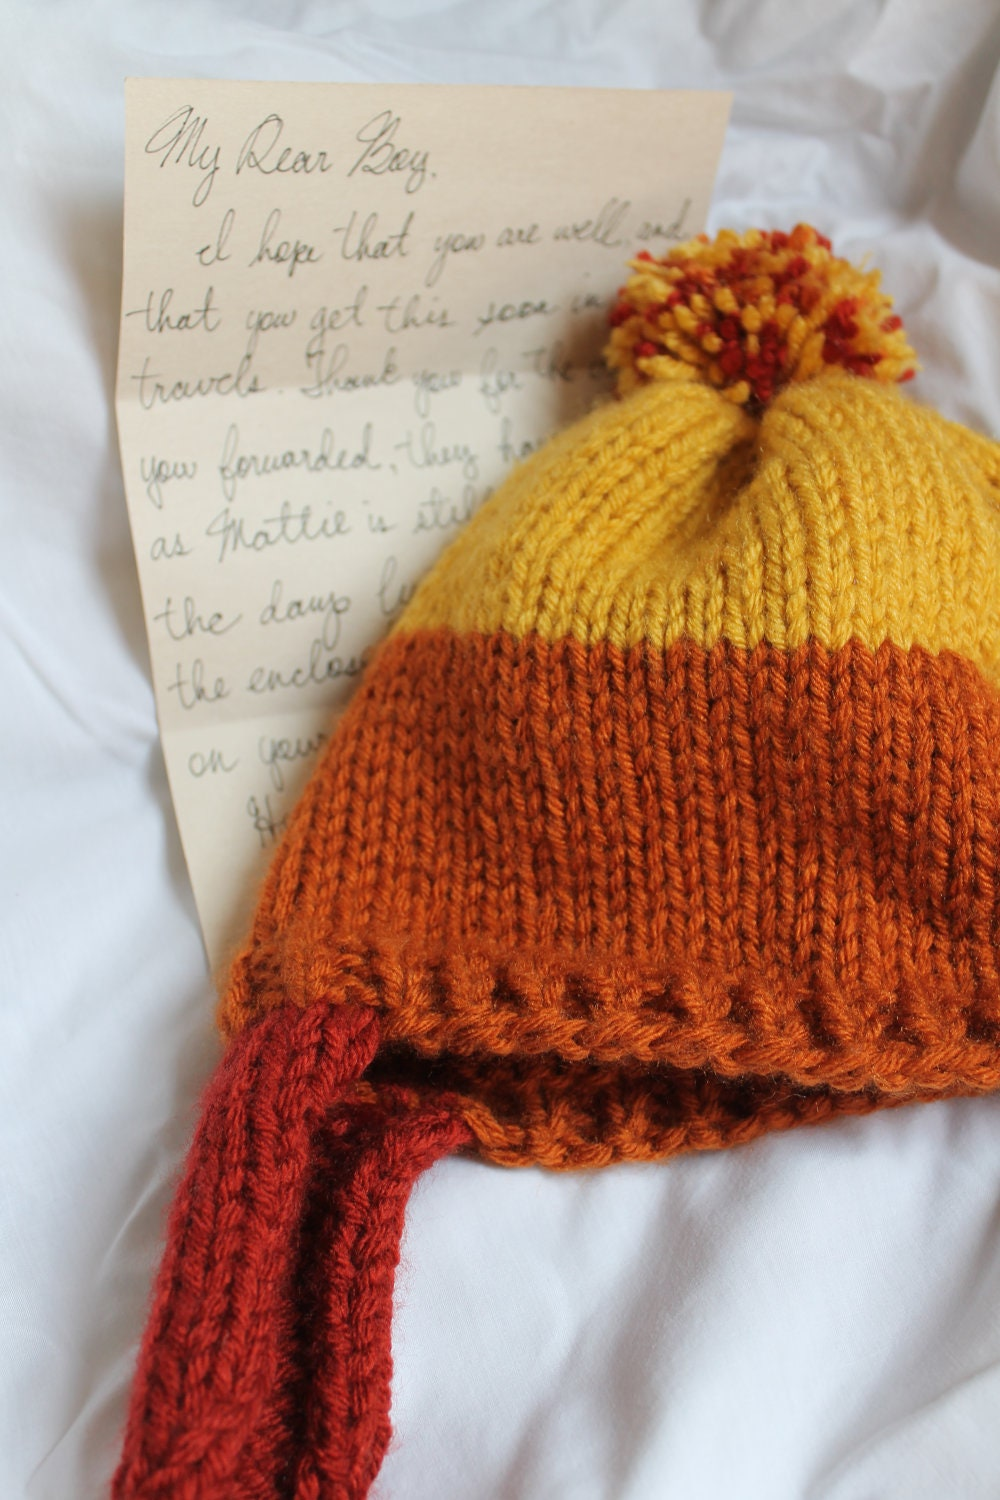 Knitting Pattern For Jayne s Hat Firefly : Items similar to Firefly Hand Knit Jayne Cobb Cunning Hat on Etsy